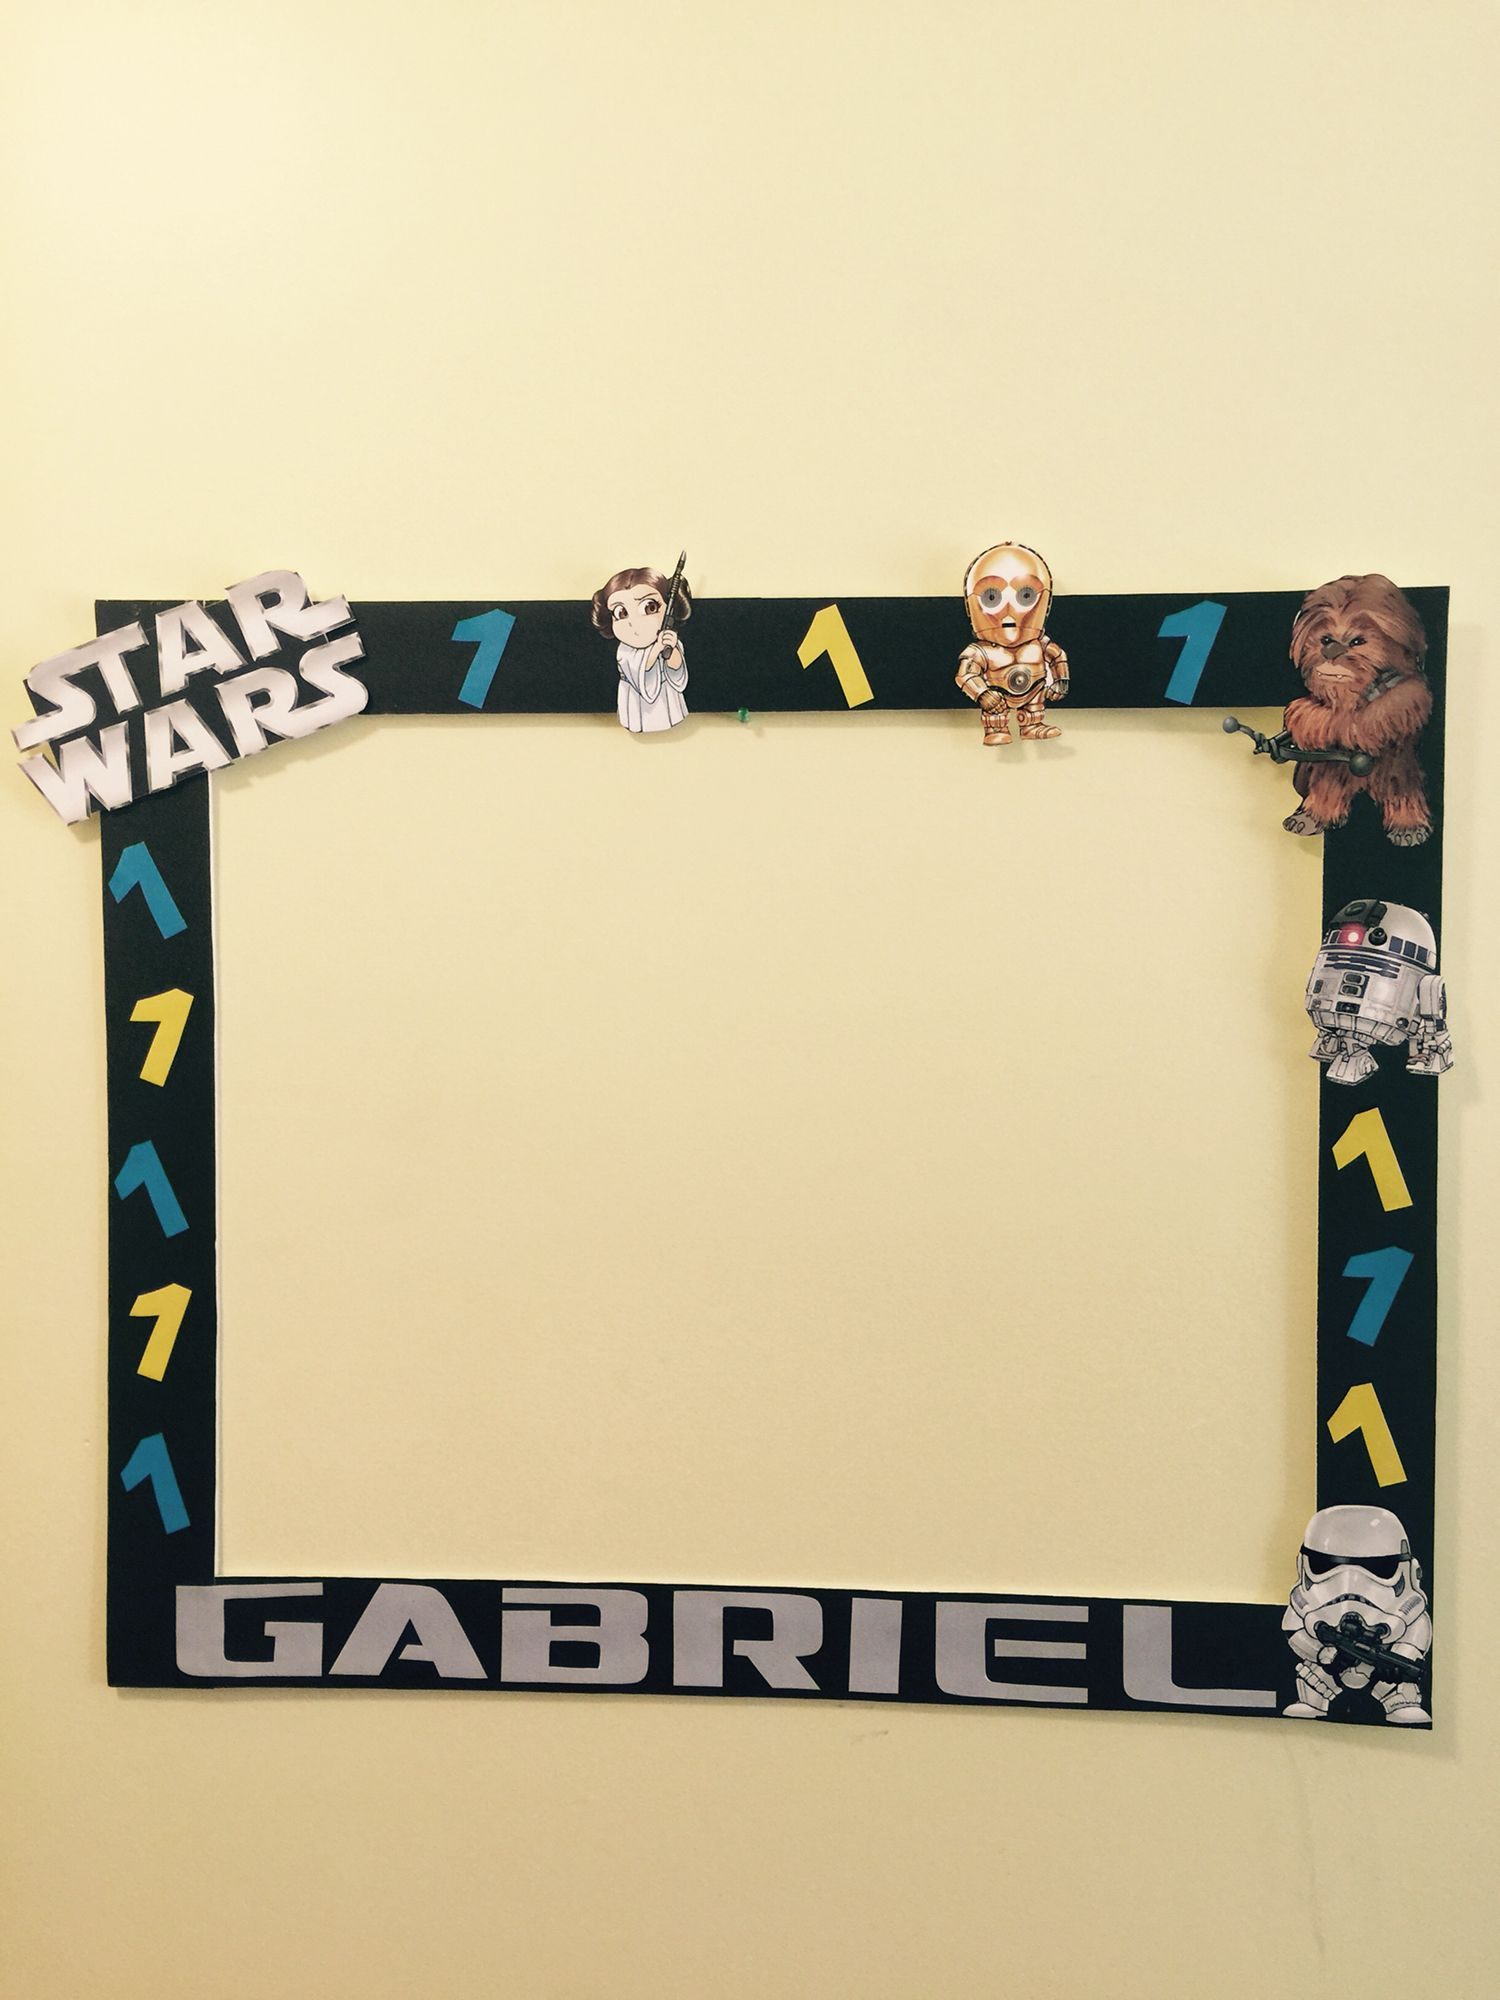 Star wars photo booth frame photo booth frame scozshop star wars photo booth frame jeuxipadfo Choice Image